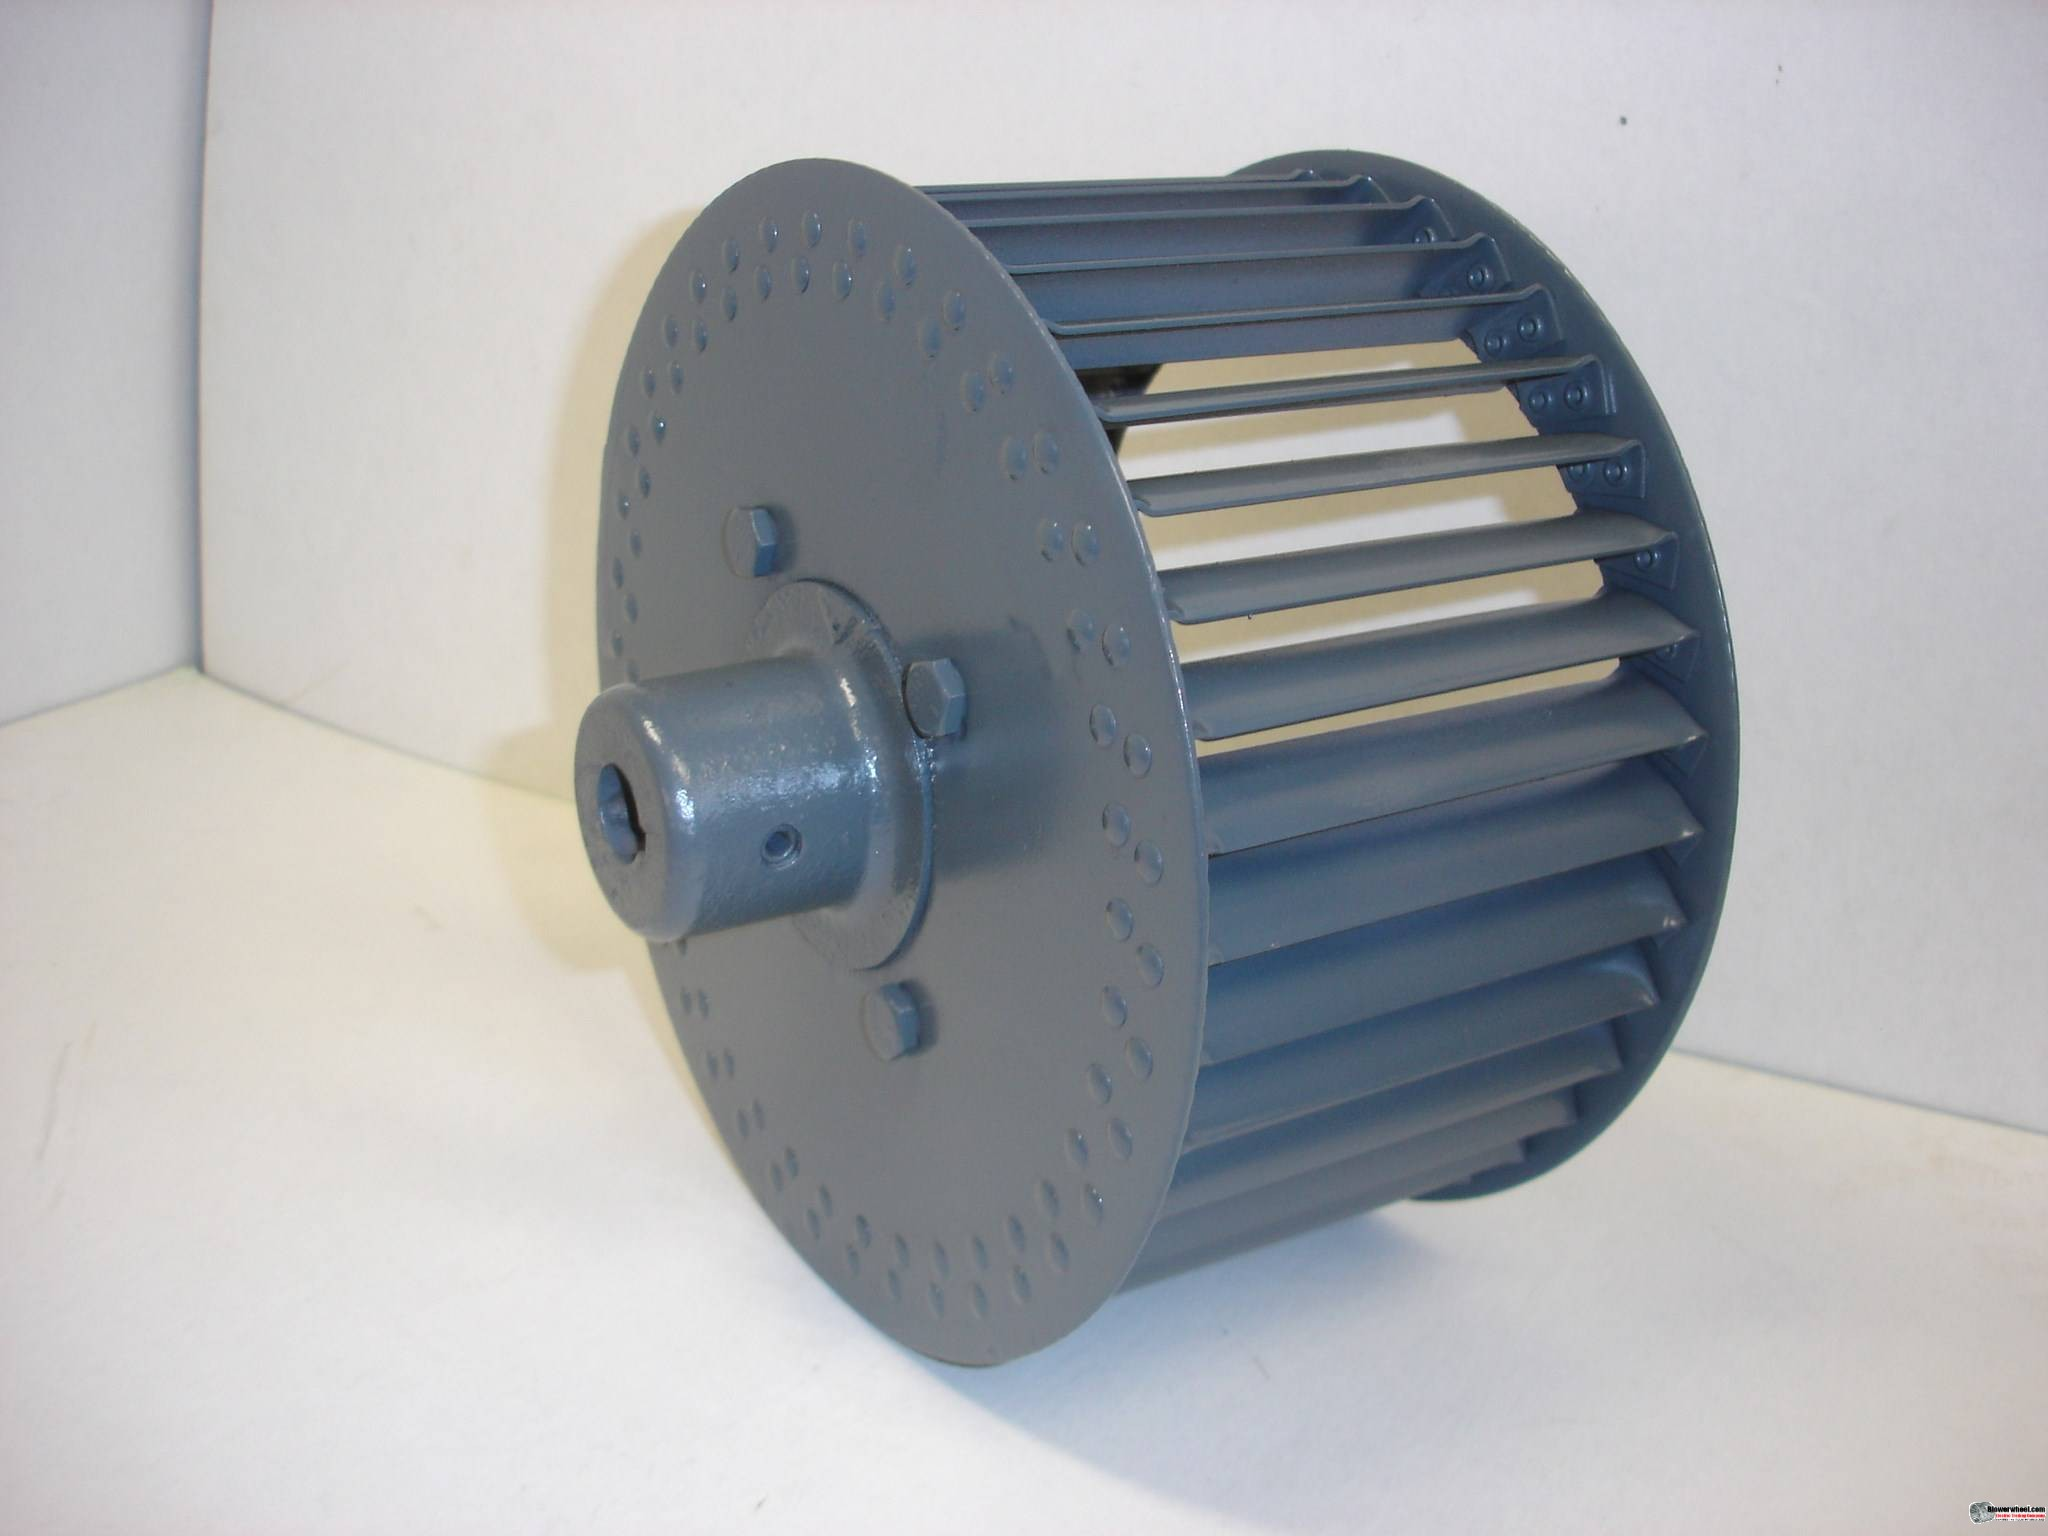 "Single Inlet Aluminum Blower Wheel 9"" Diameter 4-3/8"" Width 1/2"" Bore Clockwise rotation with an Outside Hub"